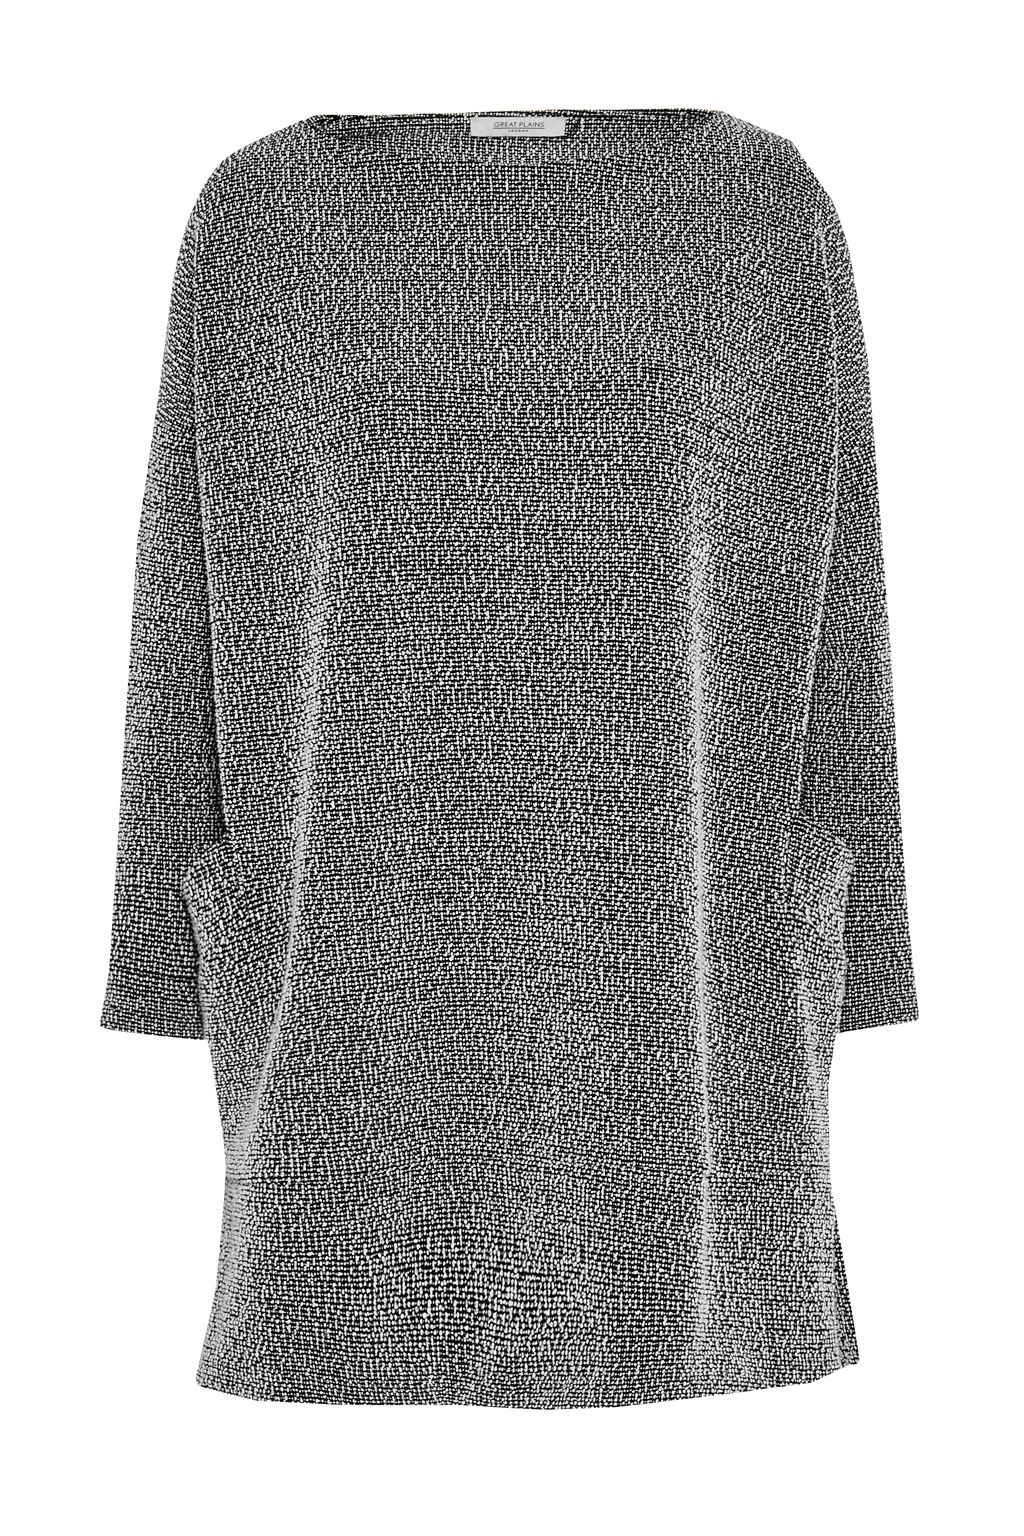 Great Plains Boulevard Boucle Tunic Top, Black